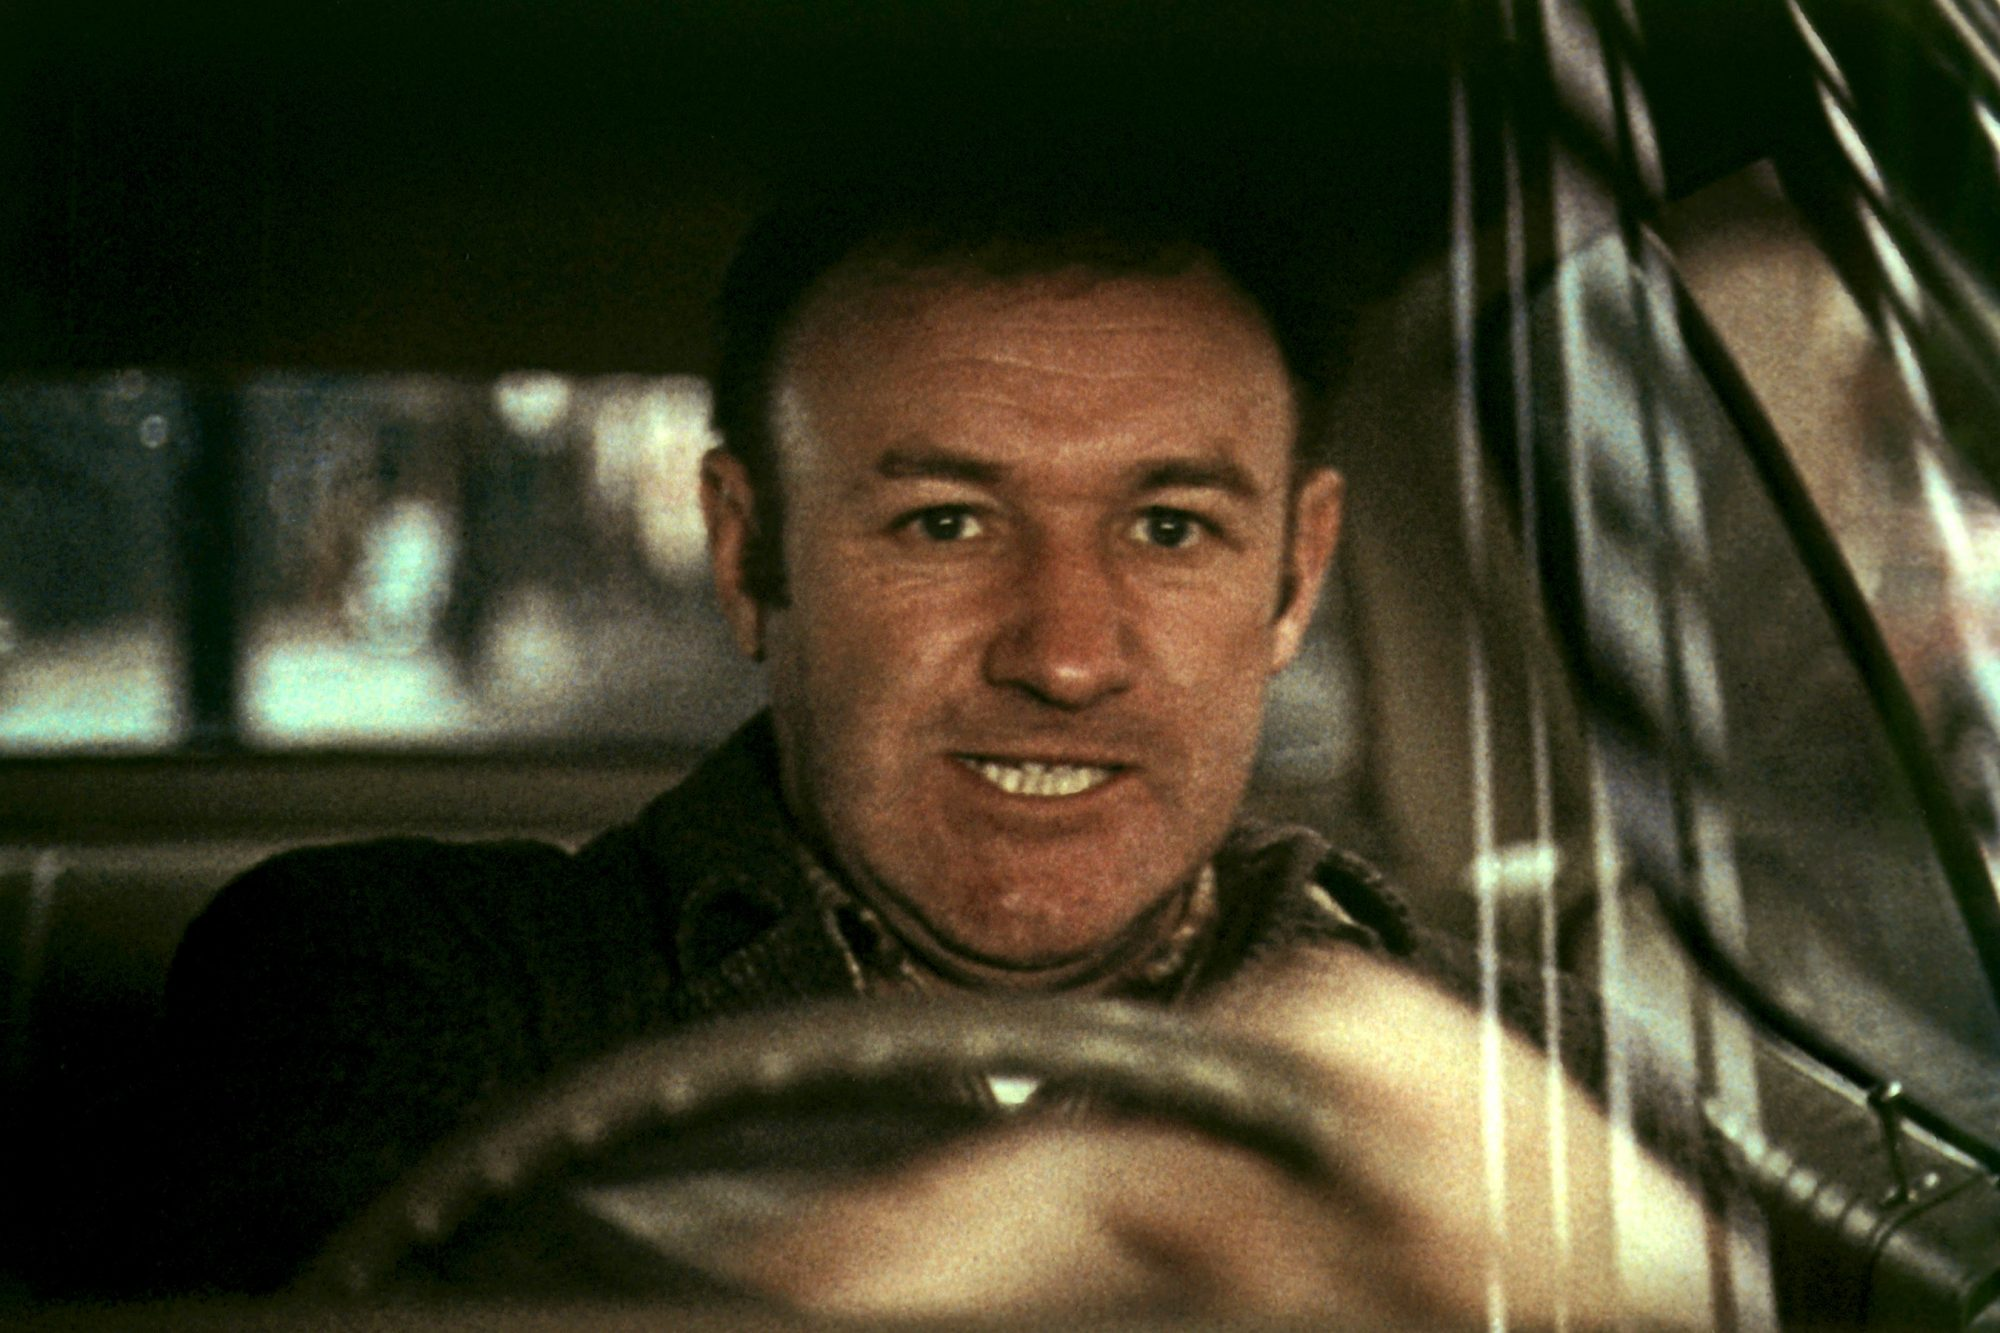 THE FRENCH CONNECTION, Gene Hackman, 1971, in the famous car chase scene. TM & Copyright (c) 20th Ce